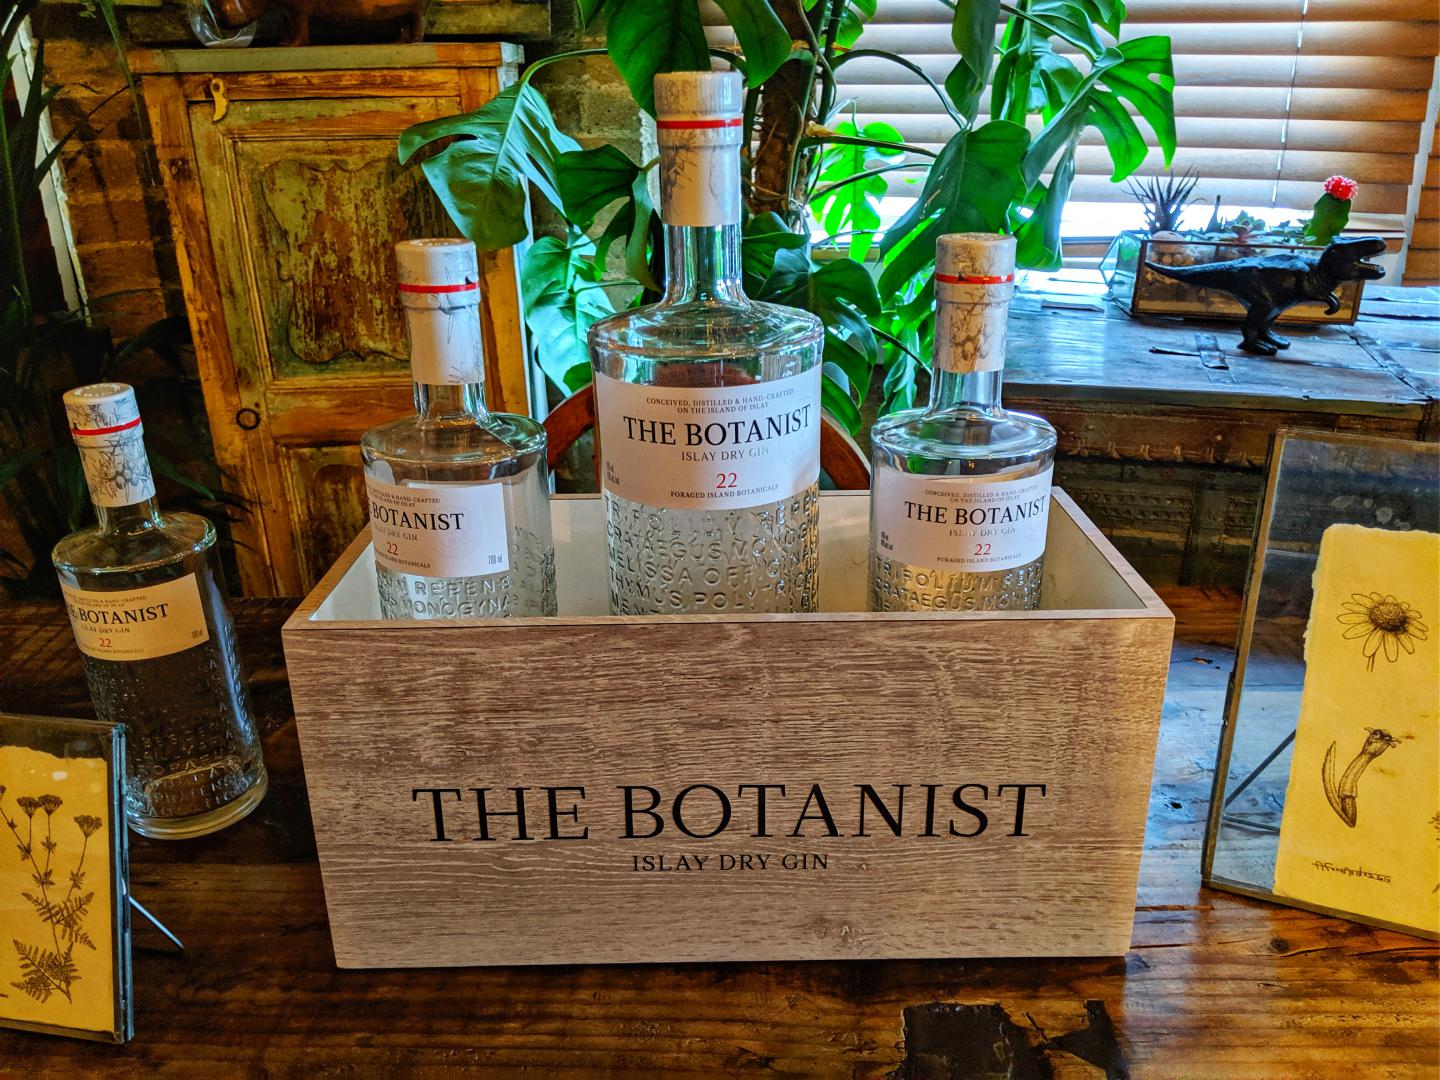 Botanist Gin bottle on table